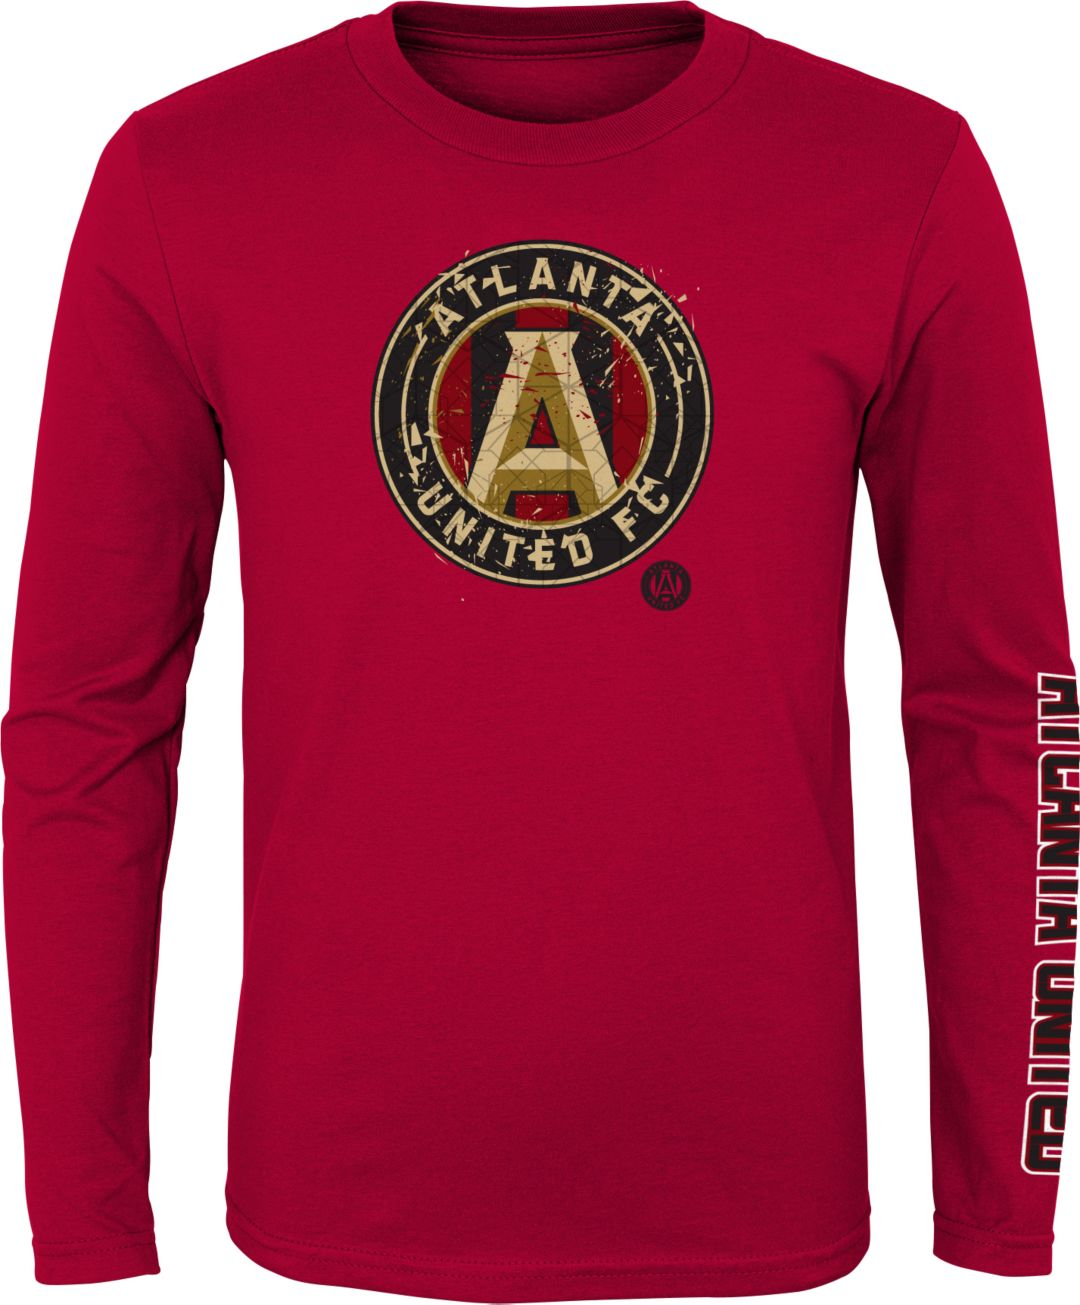 the best attitude 193d5 46fb6 MLS Youth Atlanta United Decon Red Long Sleeve Shirt